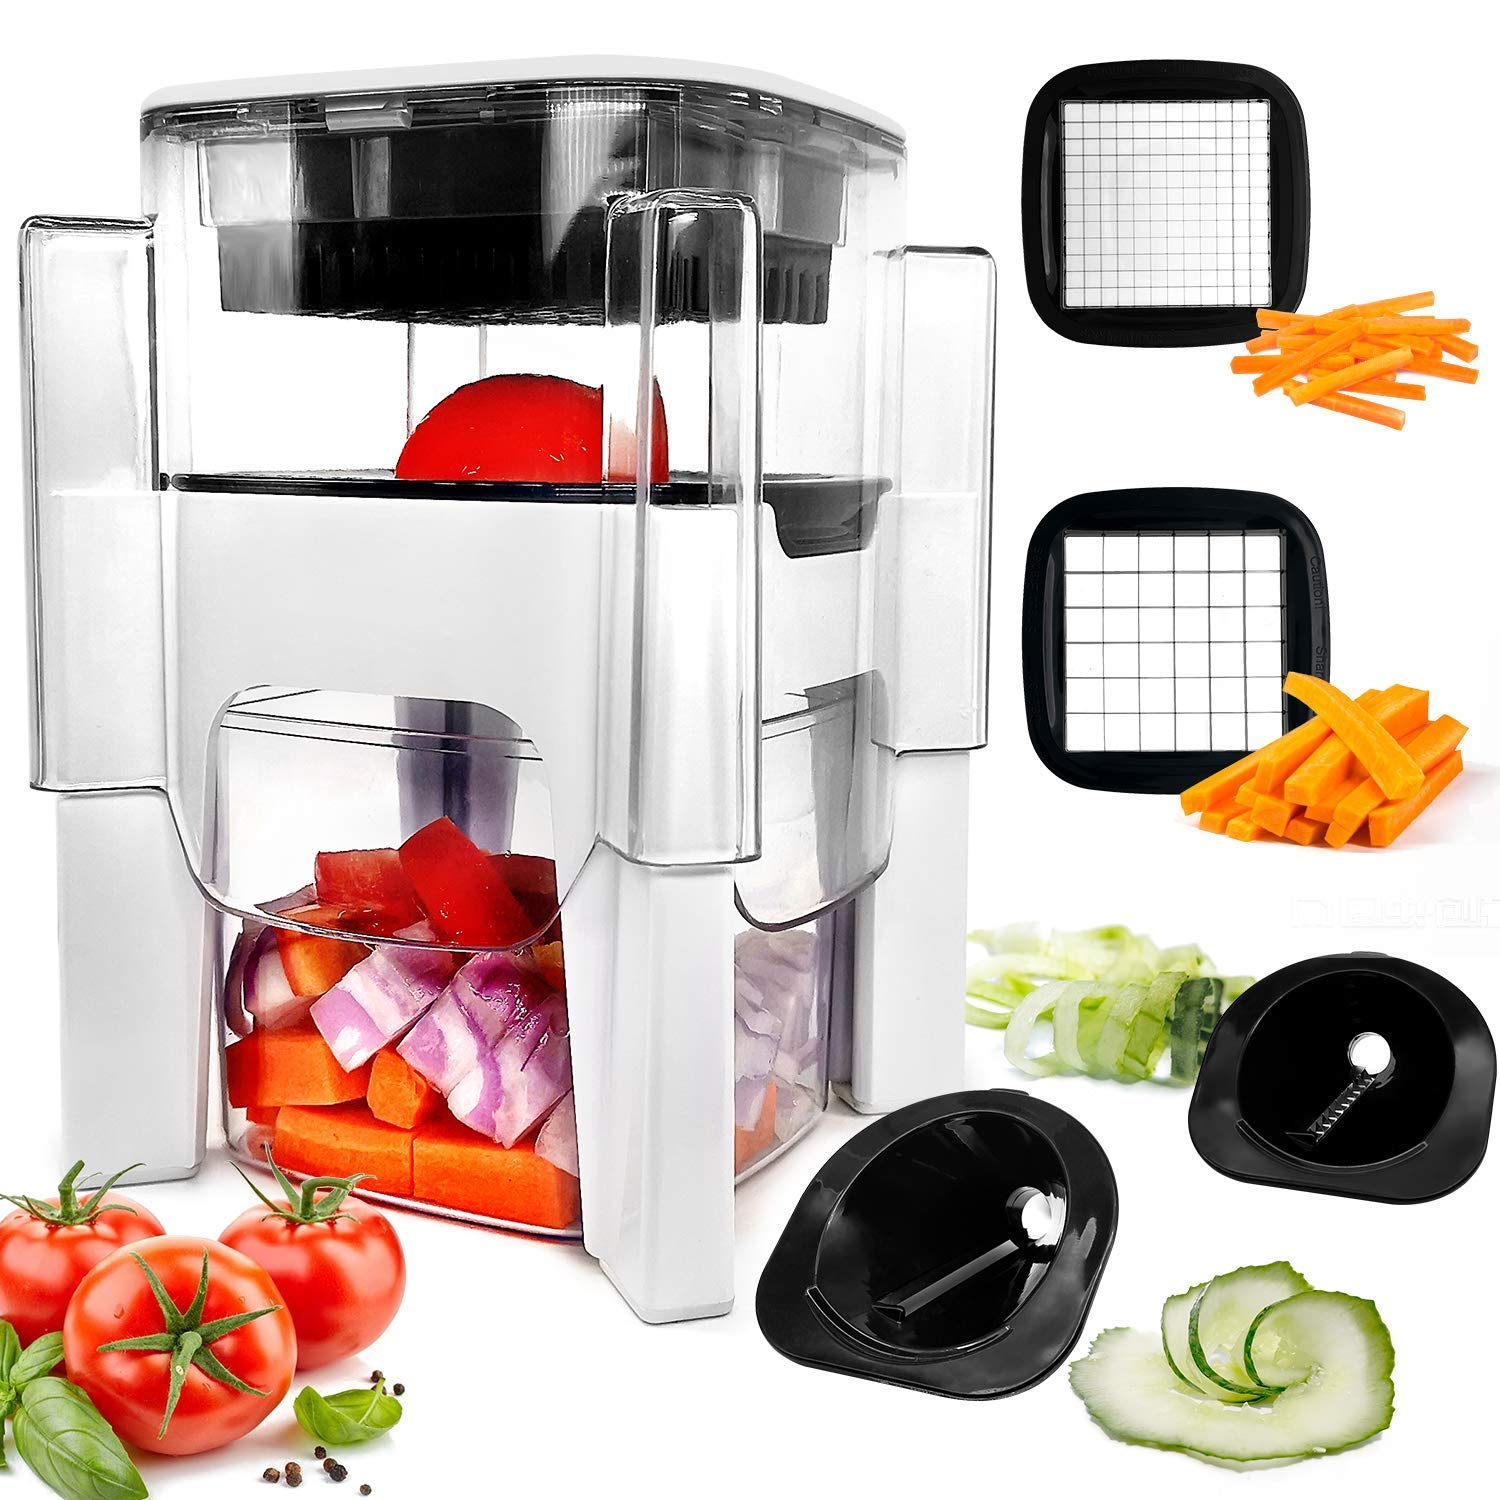 Vegetable Chopper Fun Life Spiralizer